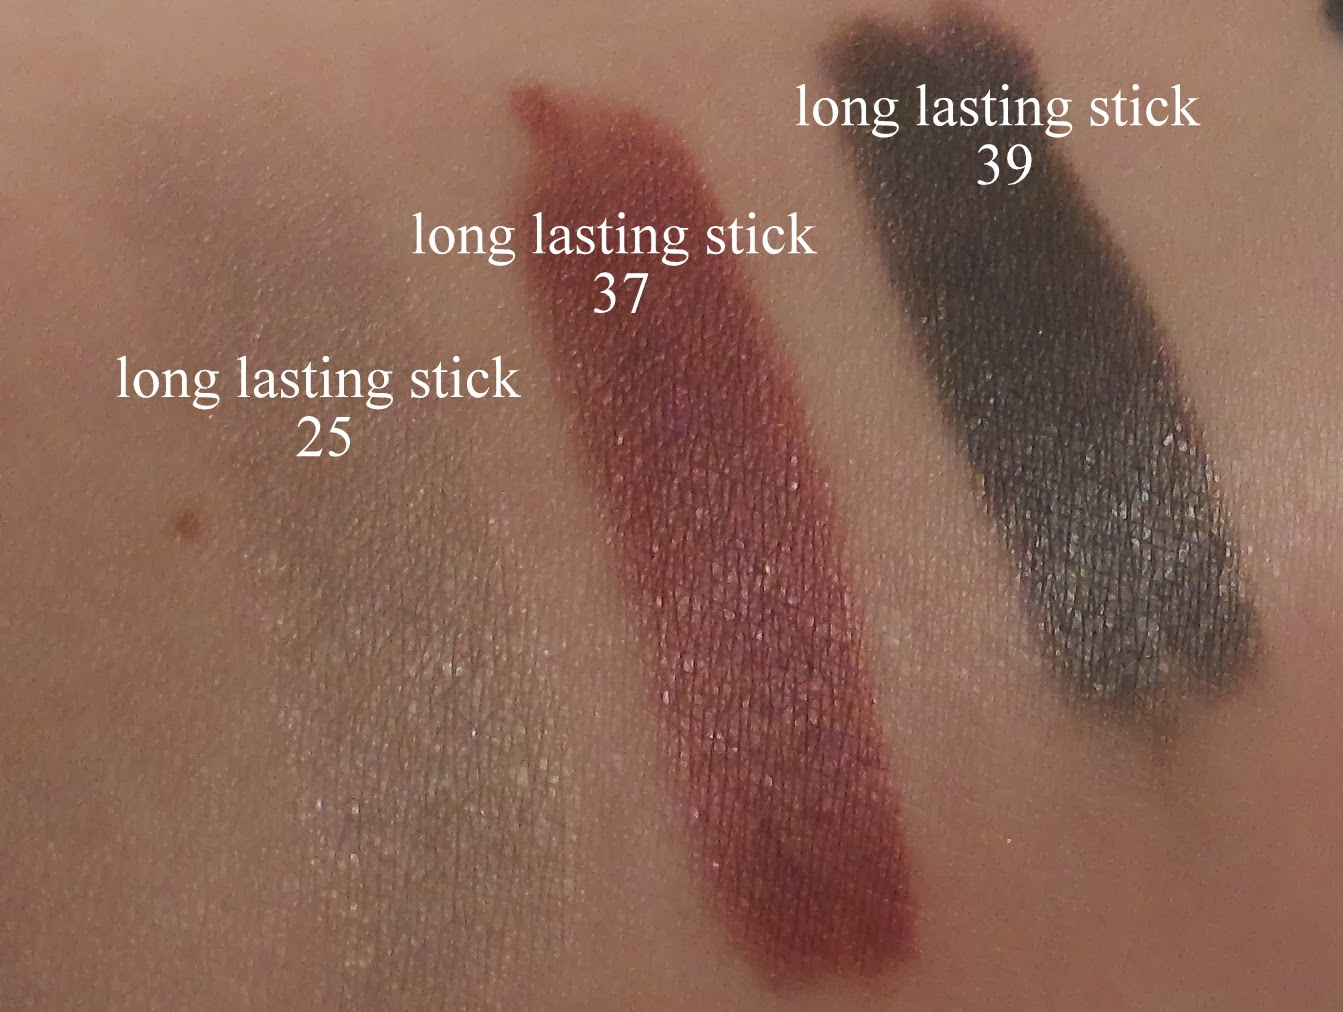 long+lasting+stick+kiko+25+37+39